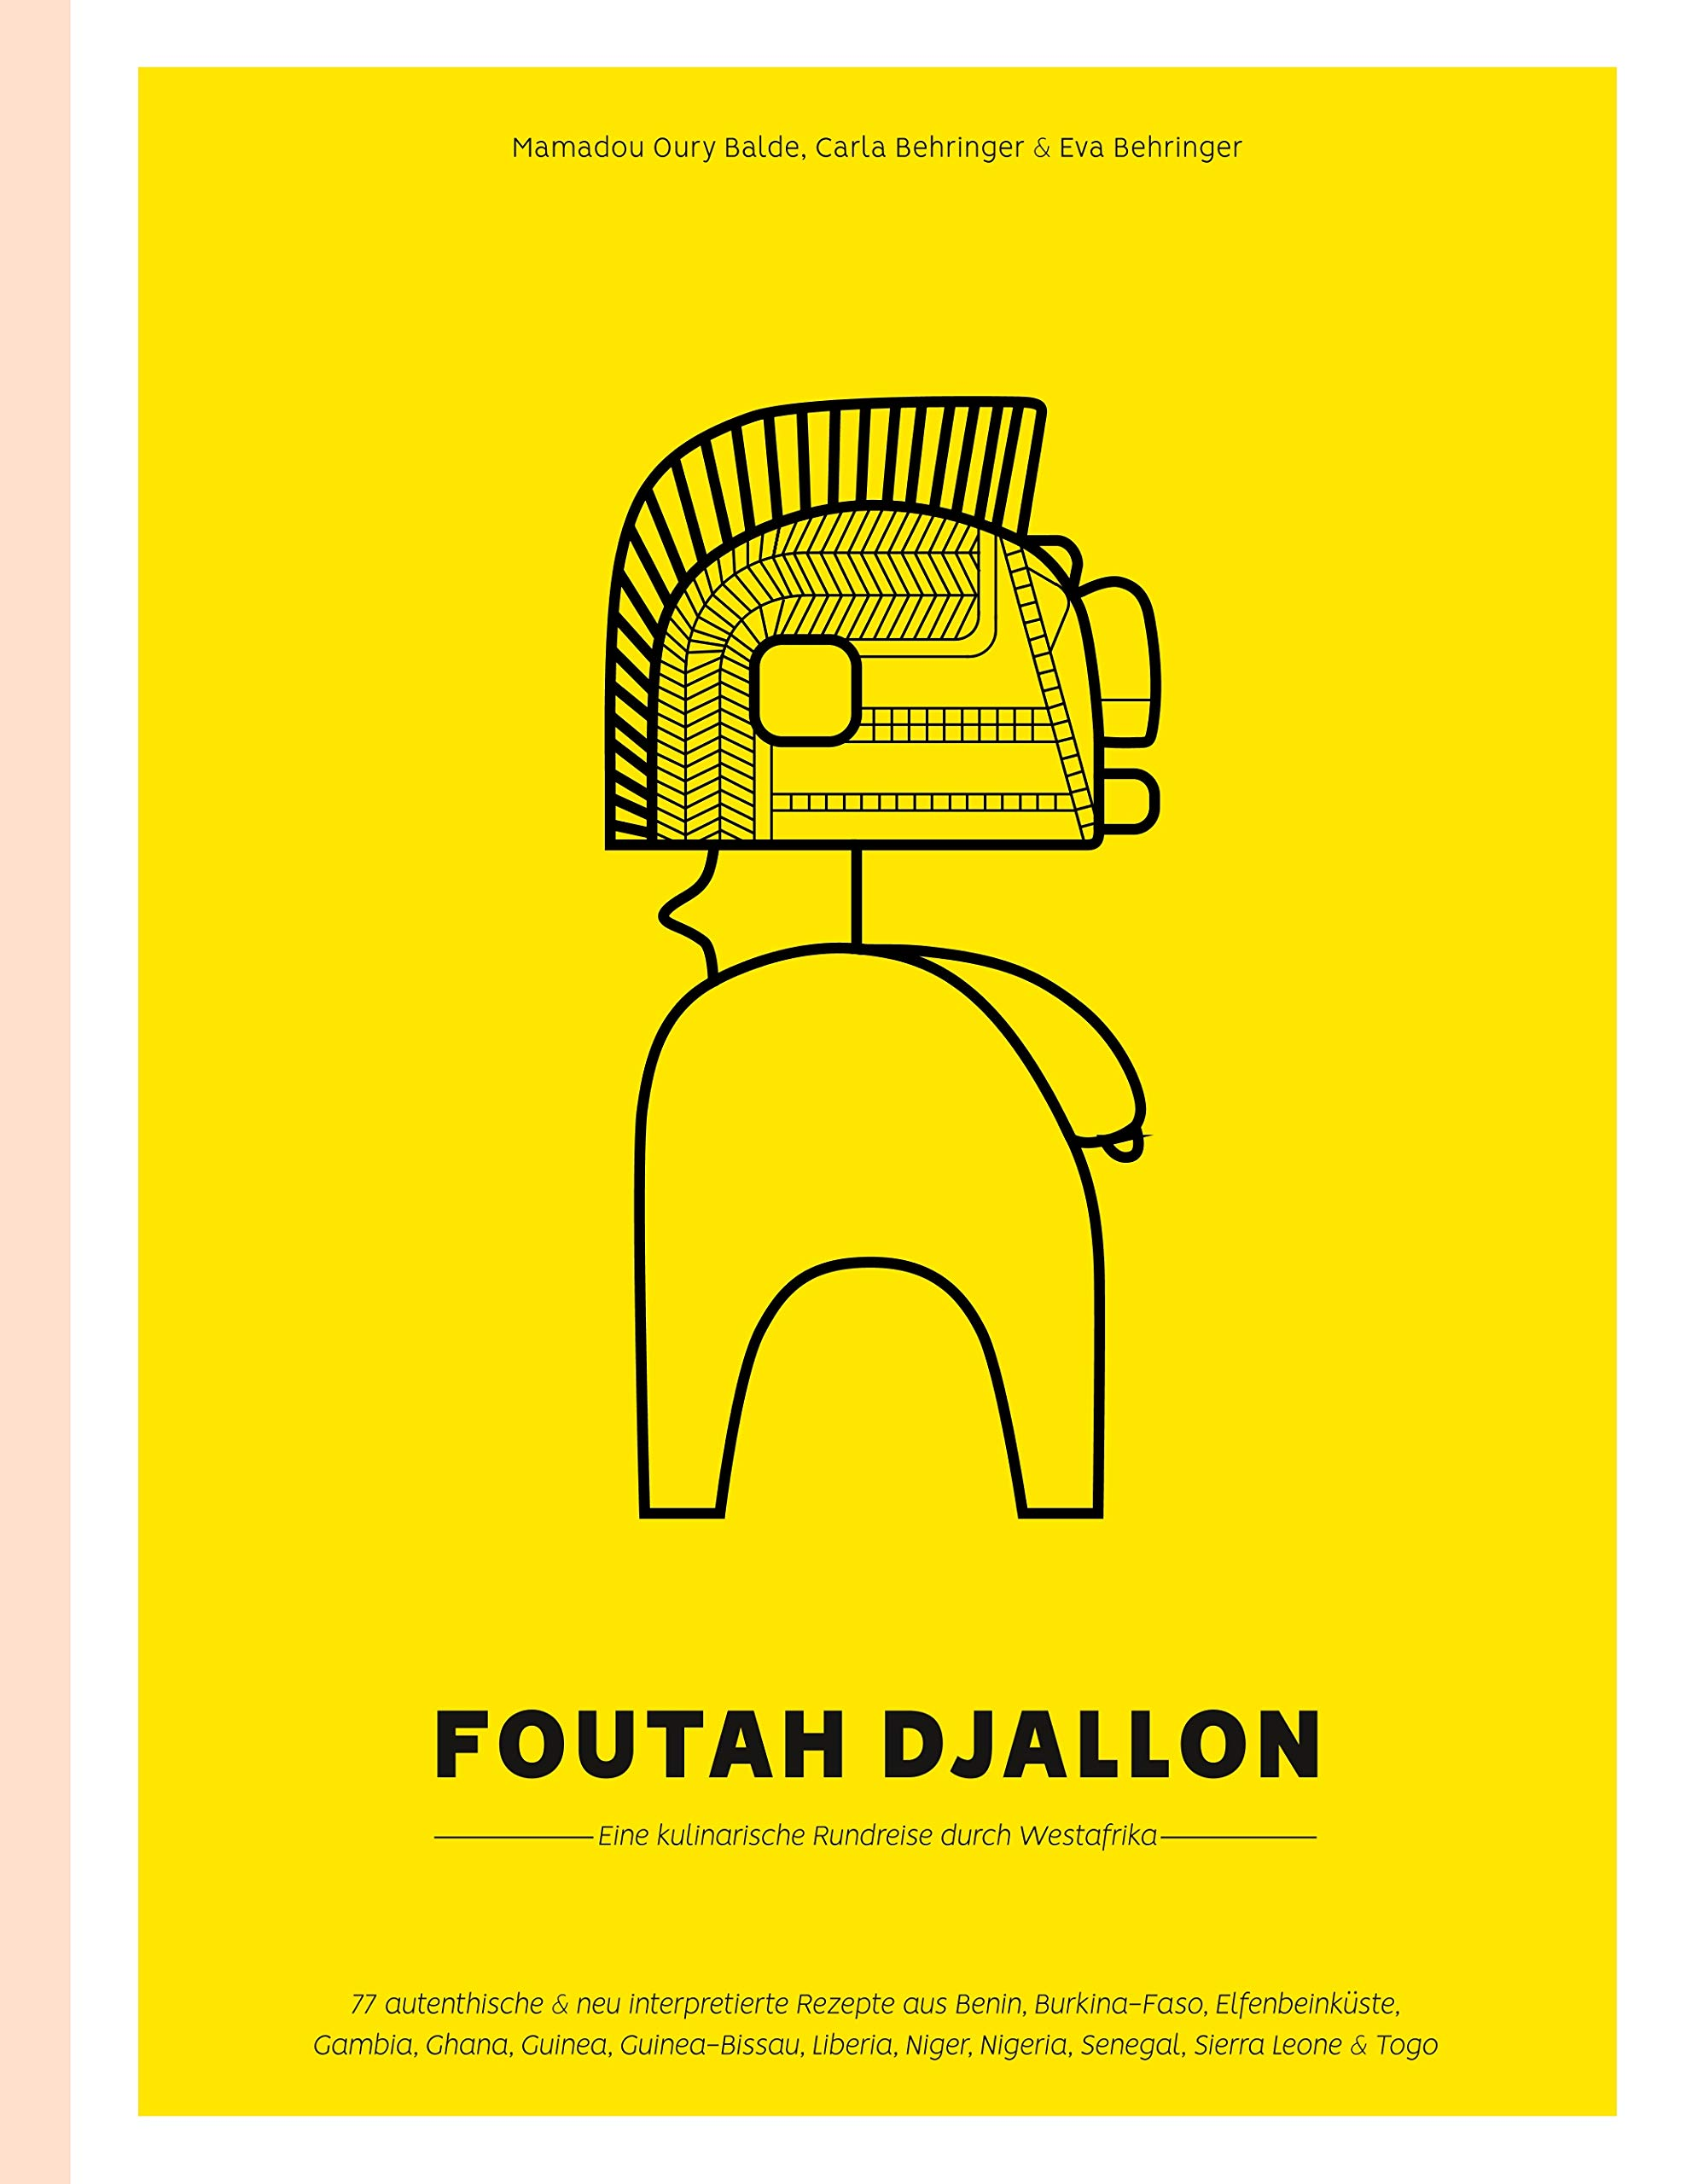 Foutah Djallon – a culinary journey through West Africa